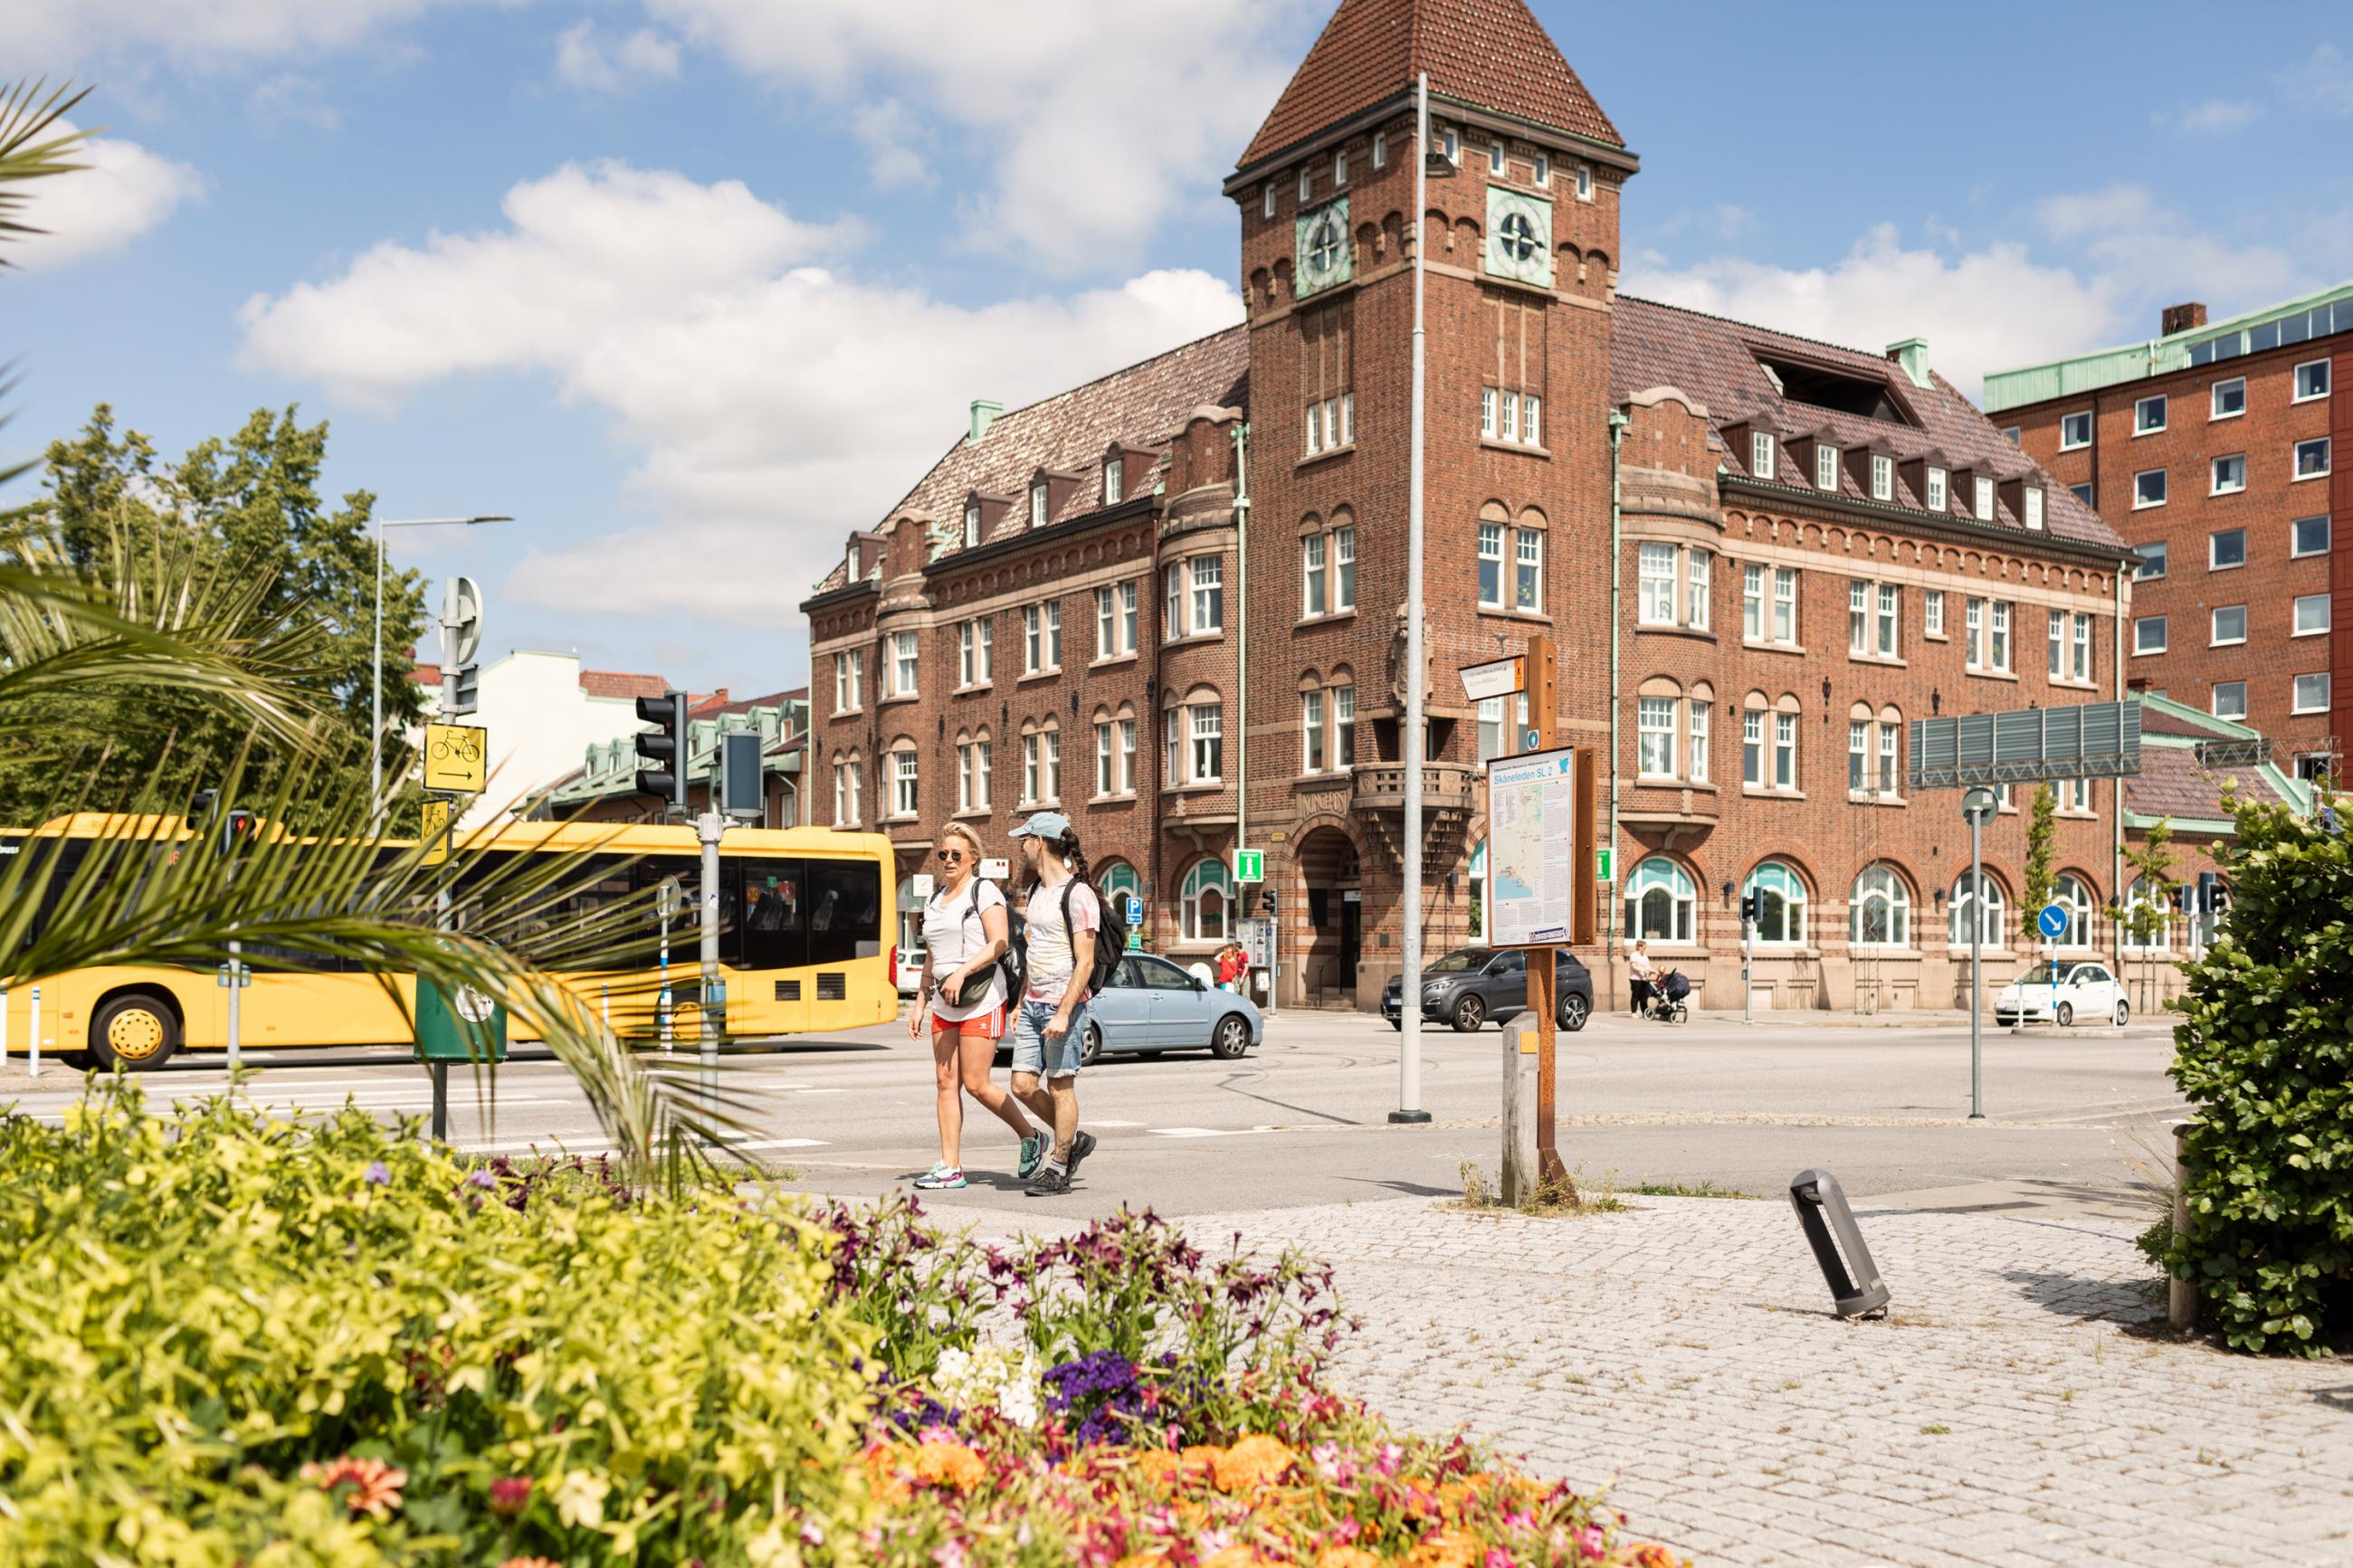 A sunny day in the center of Trelleborg. Buses, cars and people are passing by.